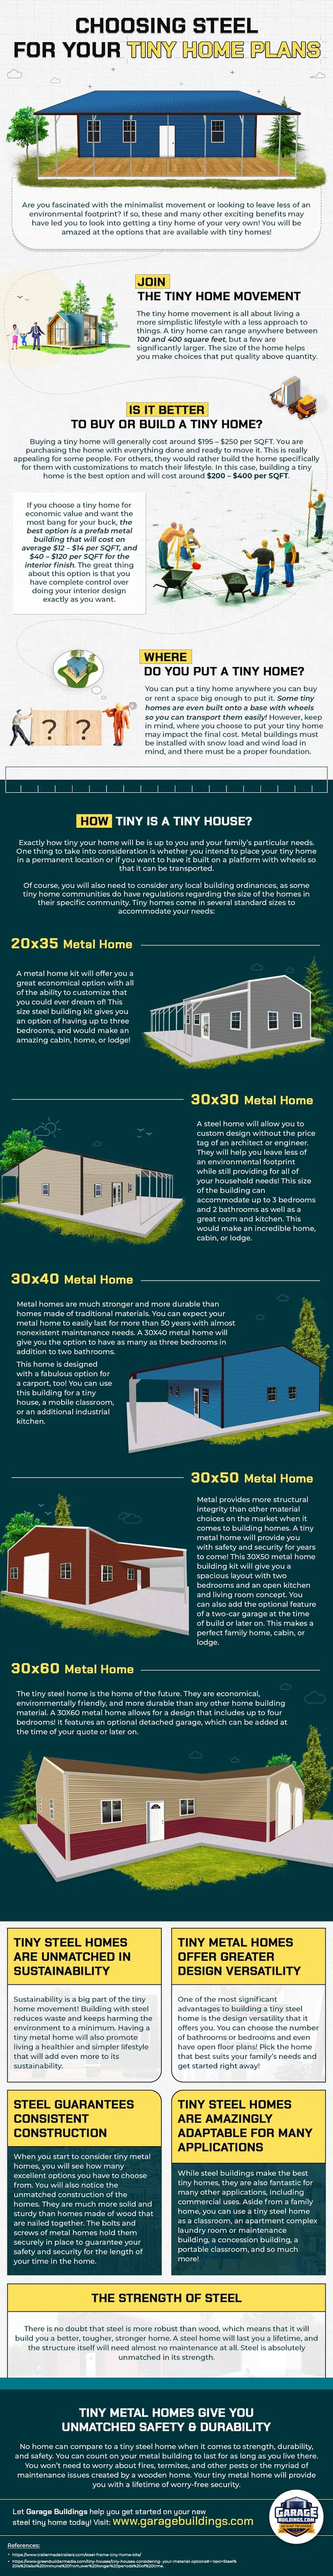 Choosing Steel For Your Tiny Home Plans #infographic #Construction #Home Plans #infographics #Steel Home